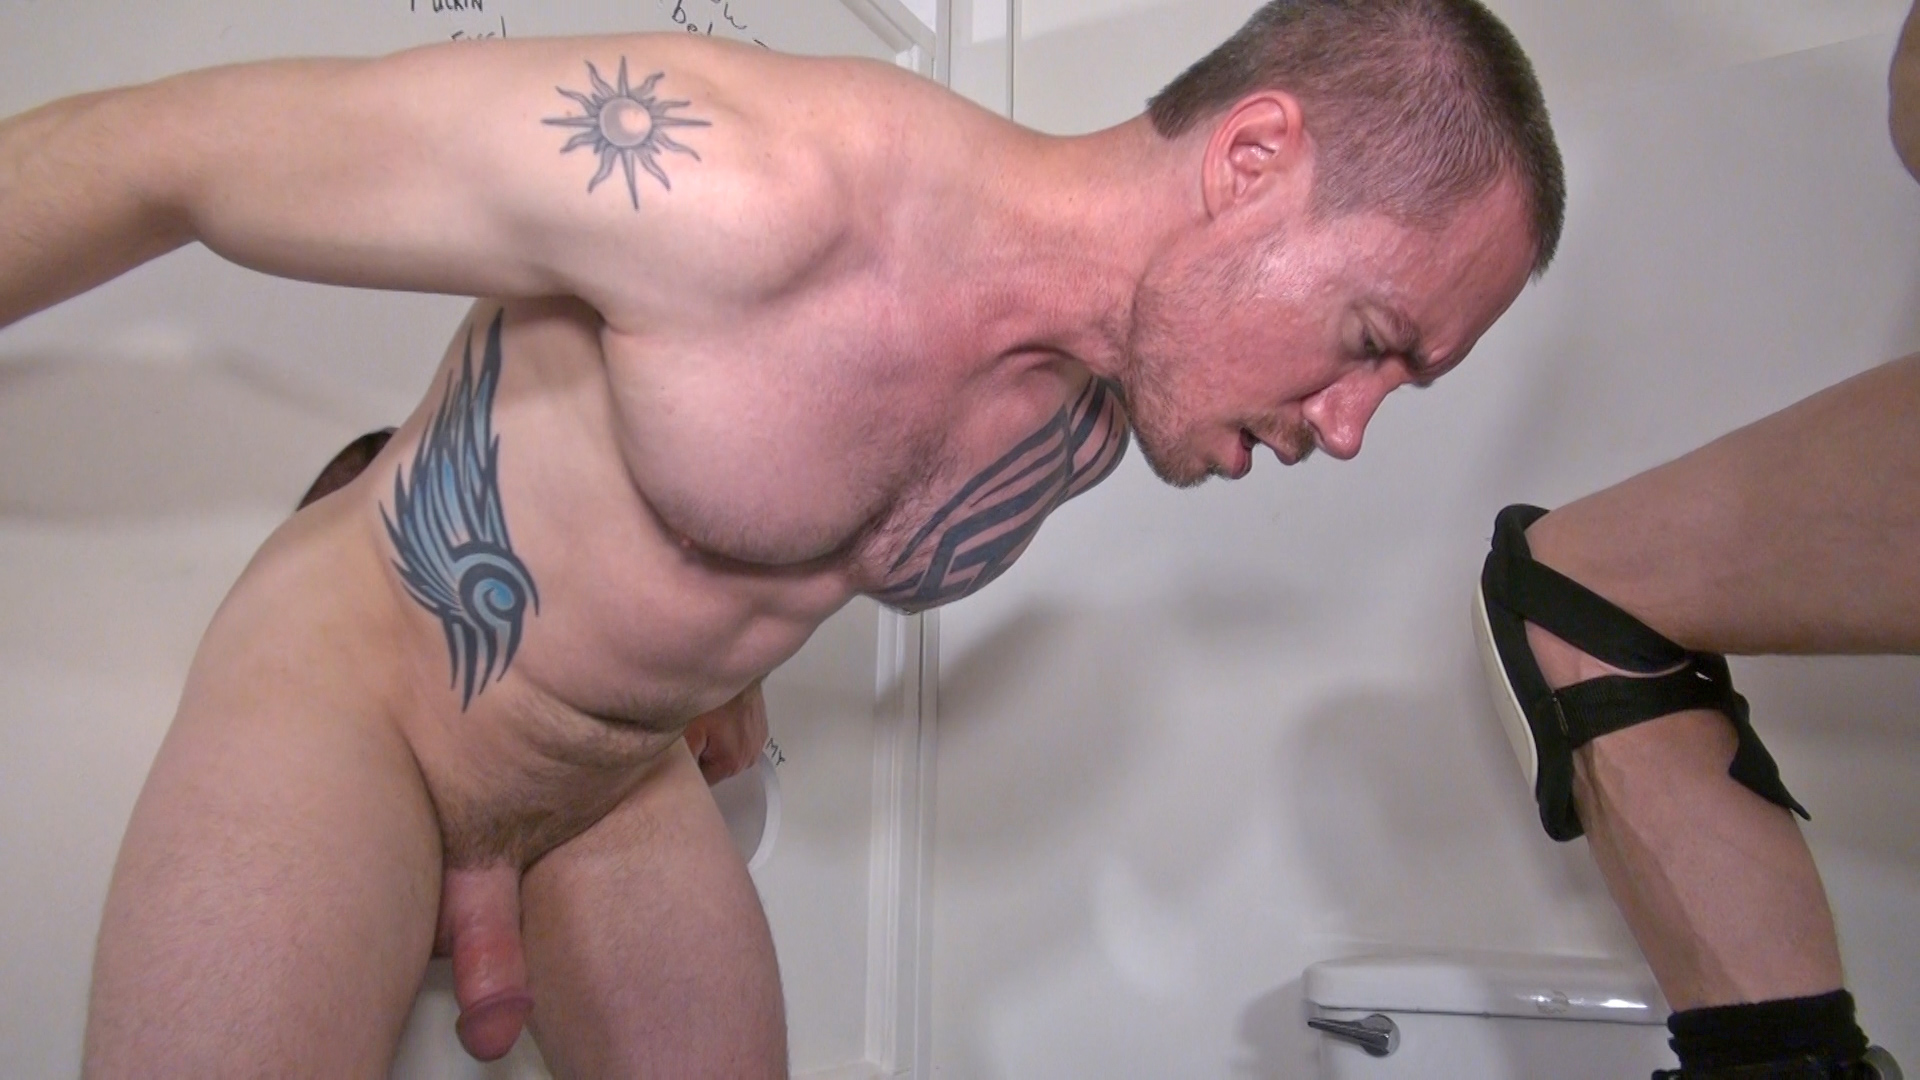 Raw and Rough Jason Mitchell Mason Garet Todd Maxwell Nick Moretti Cope and Derek Anthony Bareback Truck stop gloryhole sex Amateur Gay Porn 09 Amateur Trucker Sex At A Gloryhole With Piss, Cum and Bareback Action